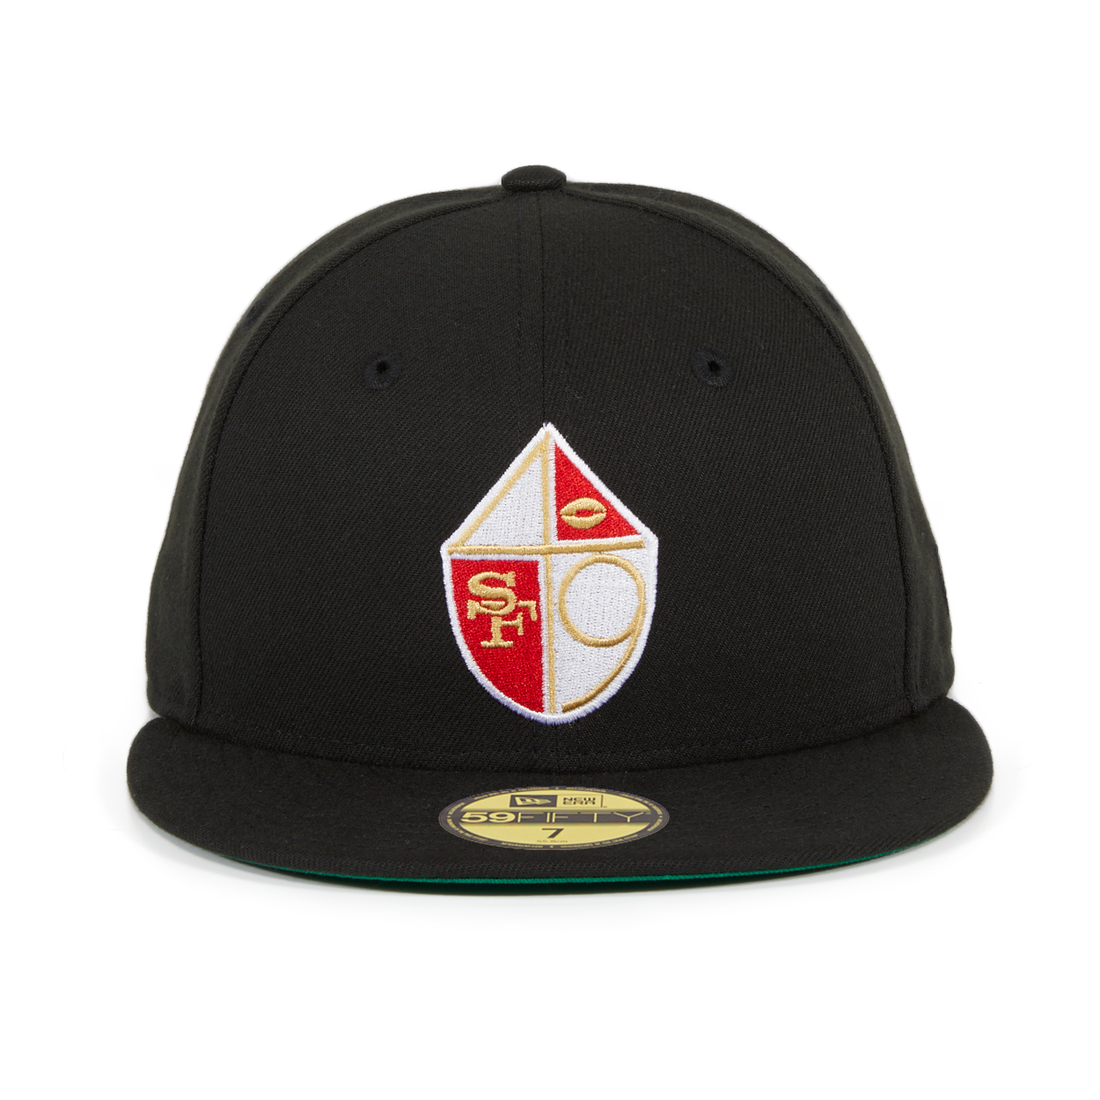 Exclusive New Era 59Fifty San Francisco 49ers Shield Hat - Black